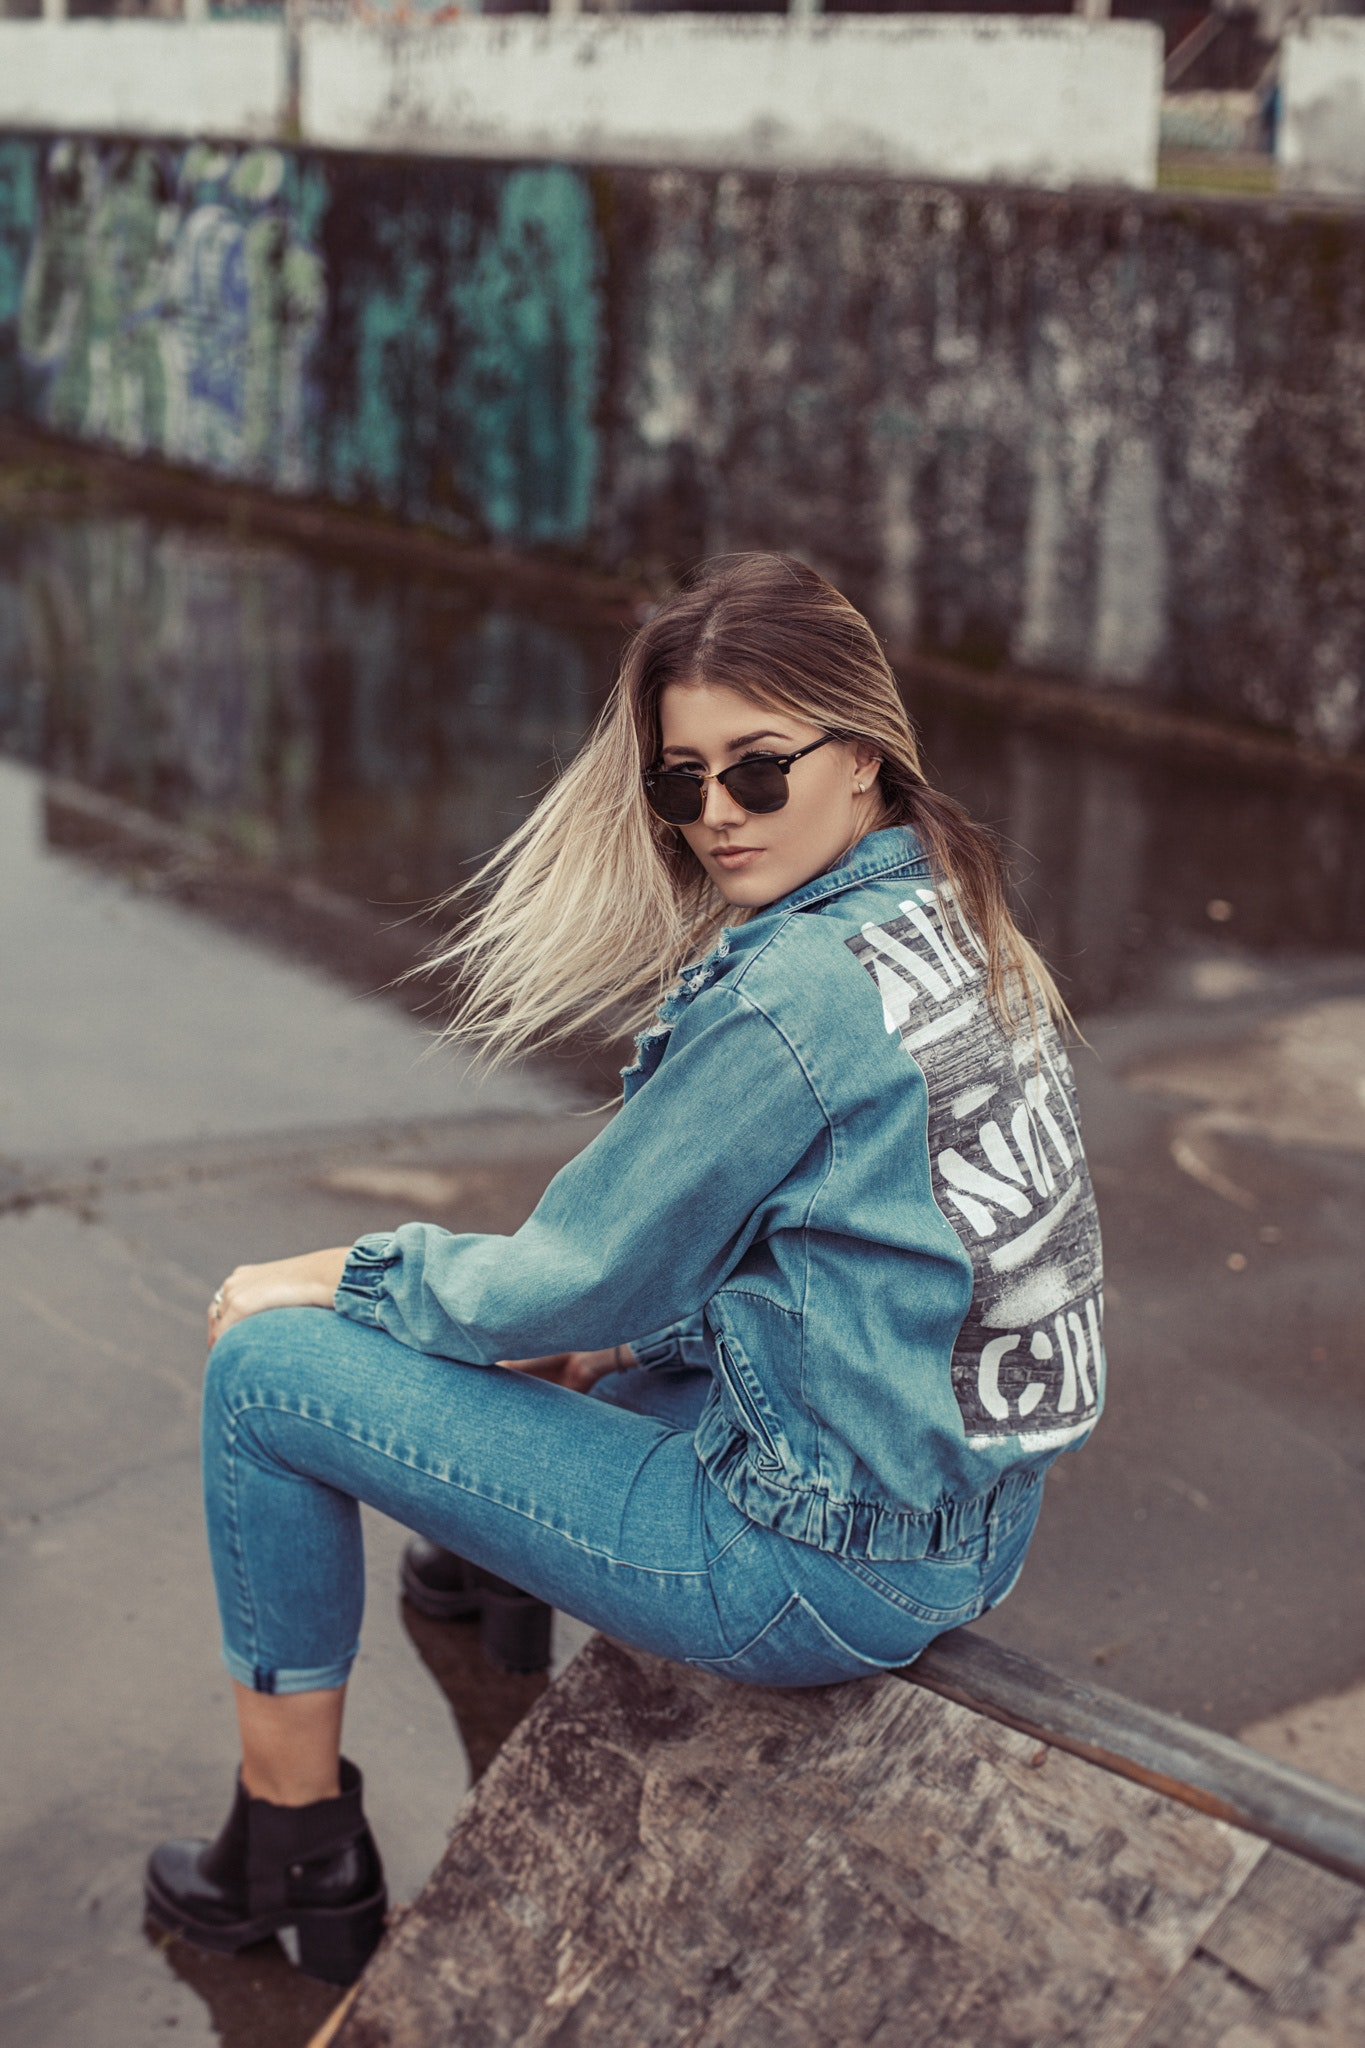 Woman wearing denim jacket and sunglasses